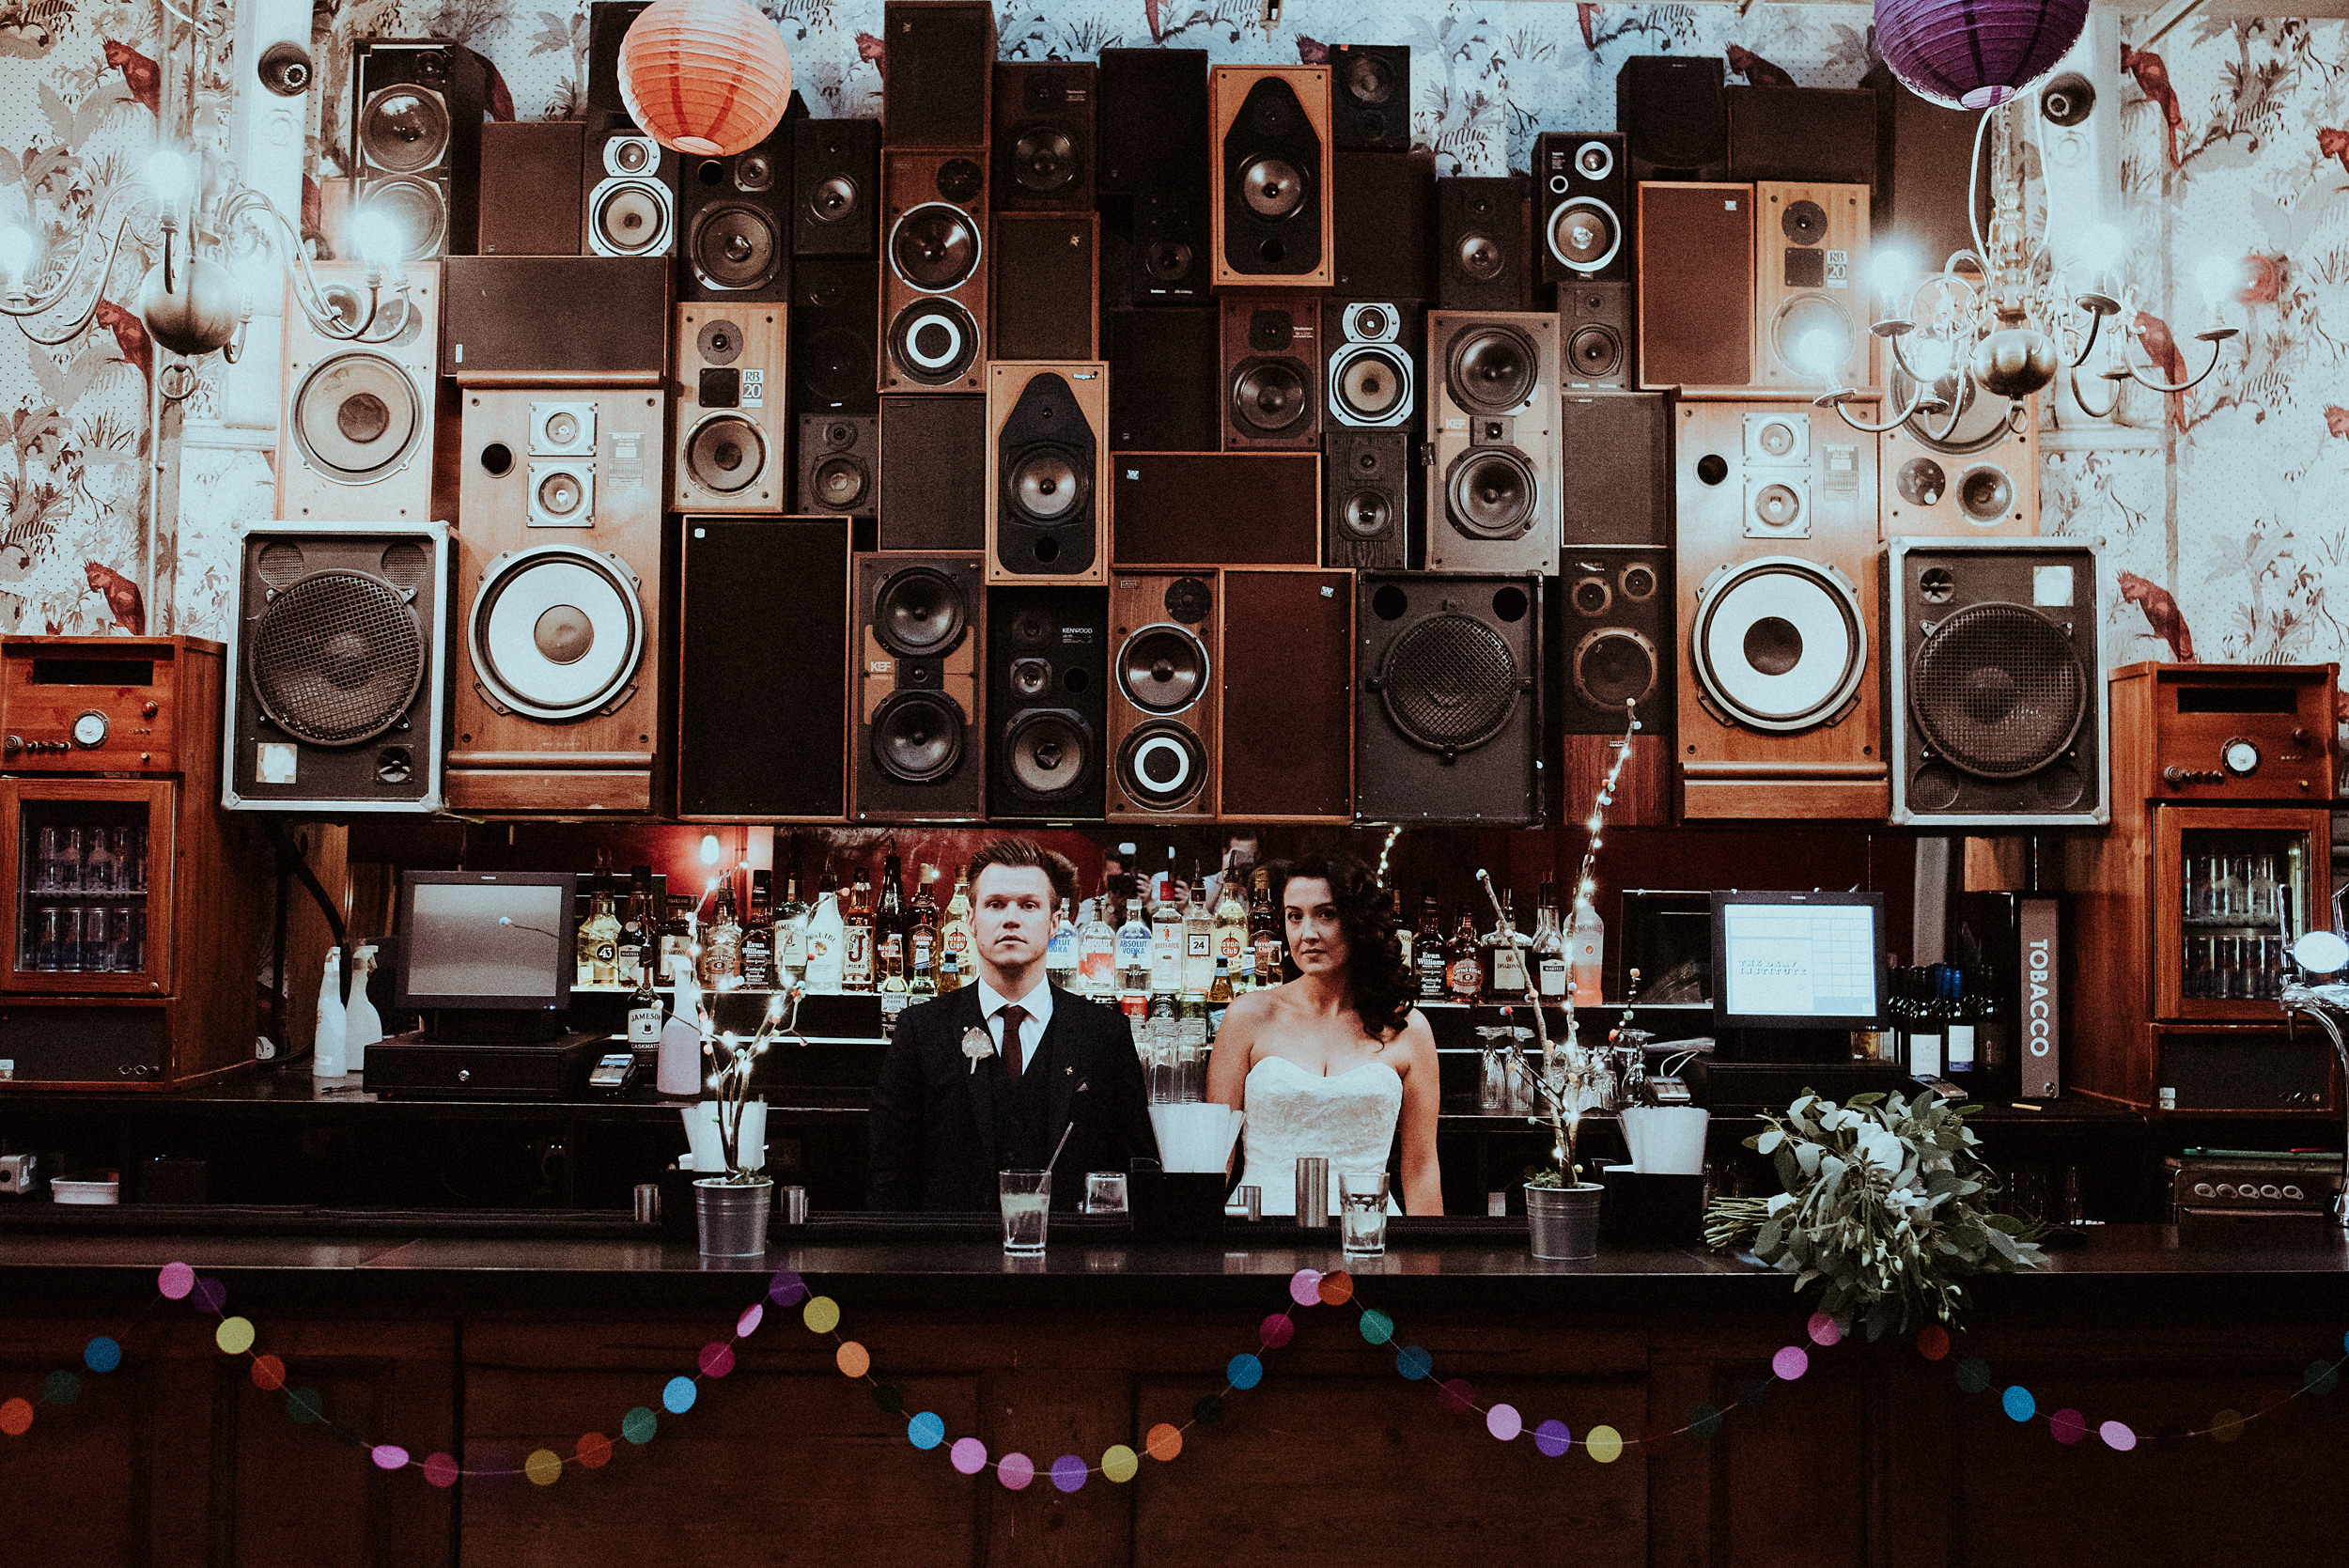 Colour & urban awesomeness collides in this Manchester City Centre wedding at the Deaf Institute.